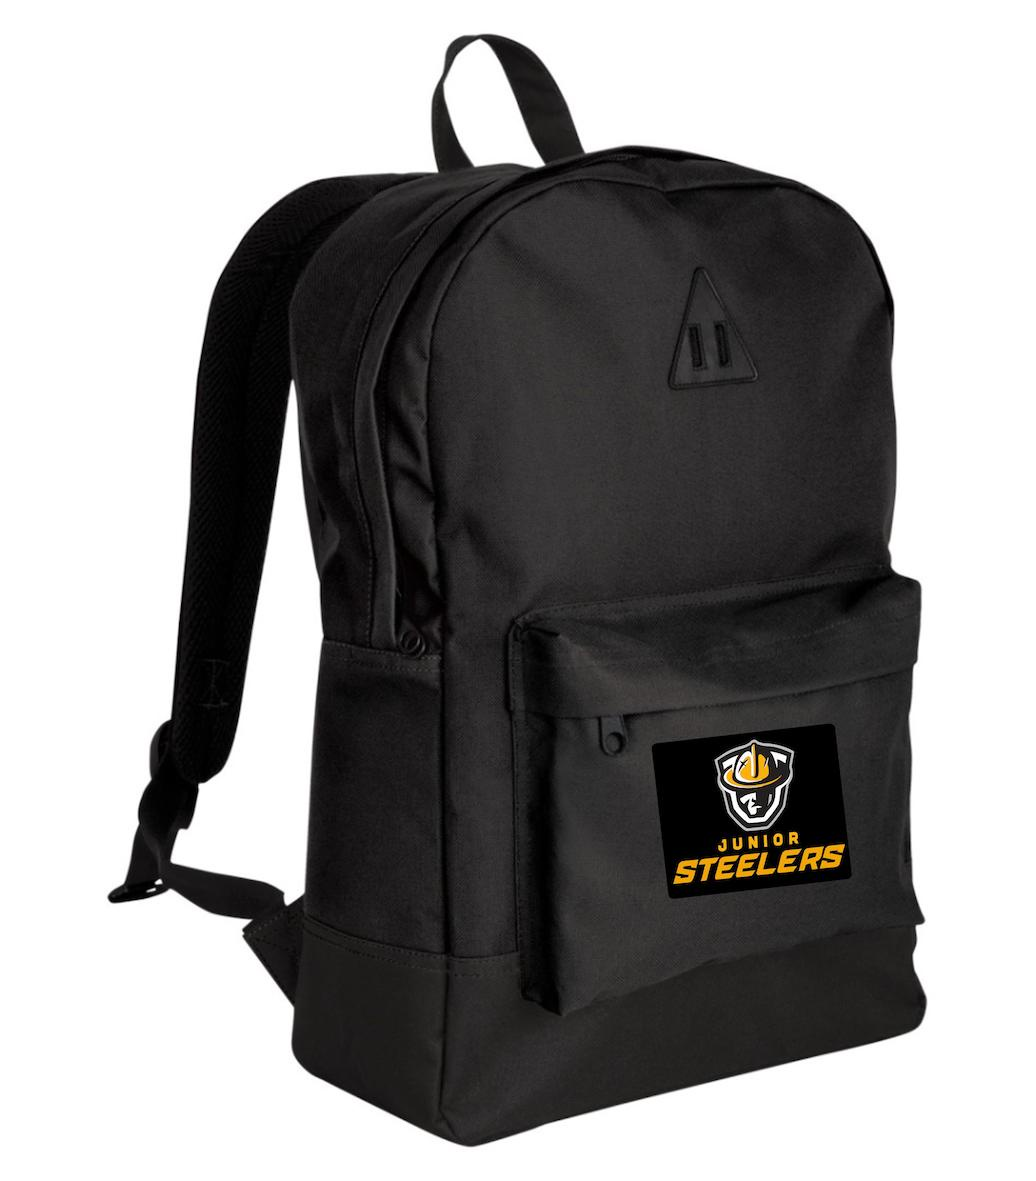 77f8a1825 ... Hockey Club  Junior Steelers Retro BackPack. Junior Steelers Retro  BackPack